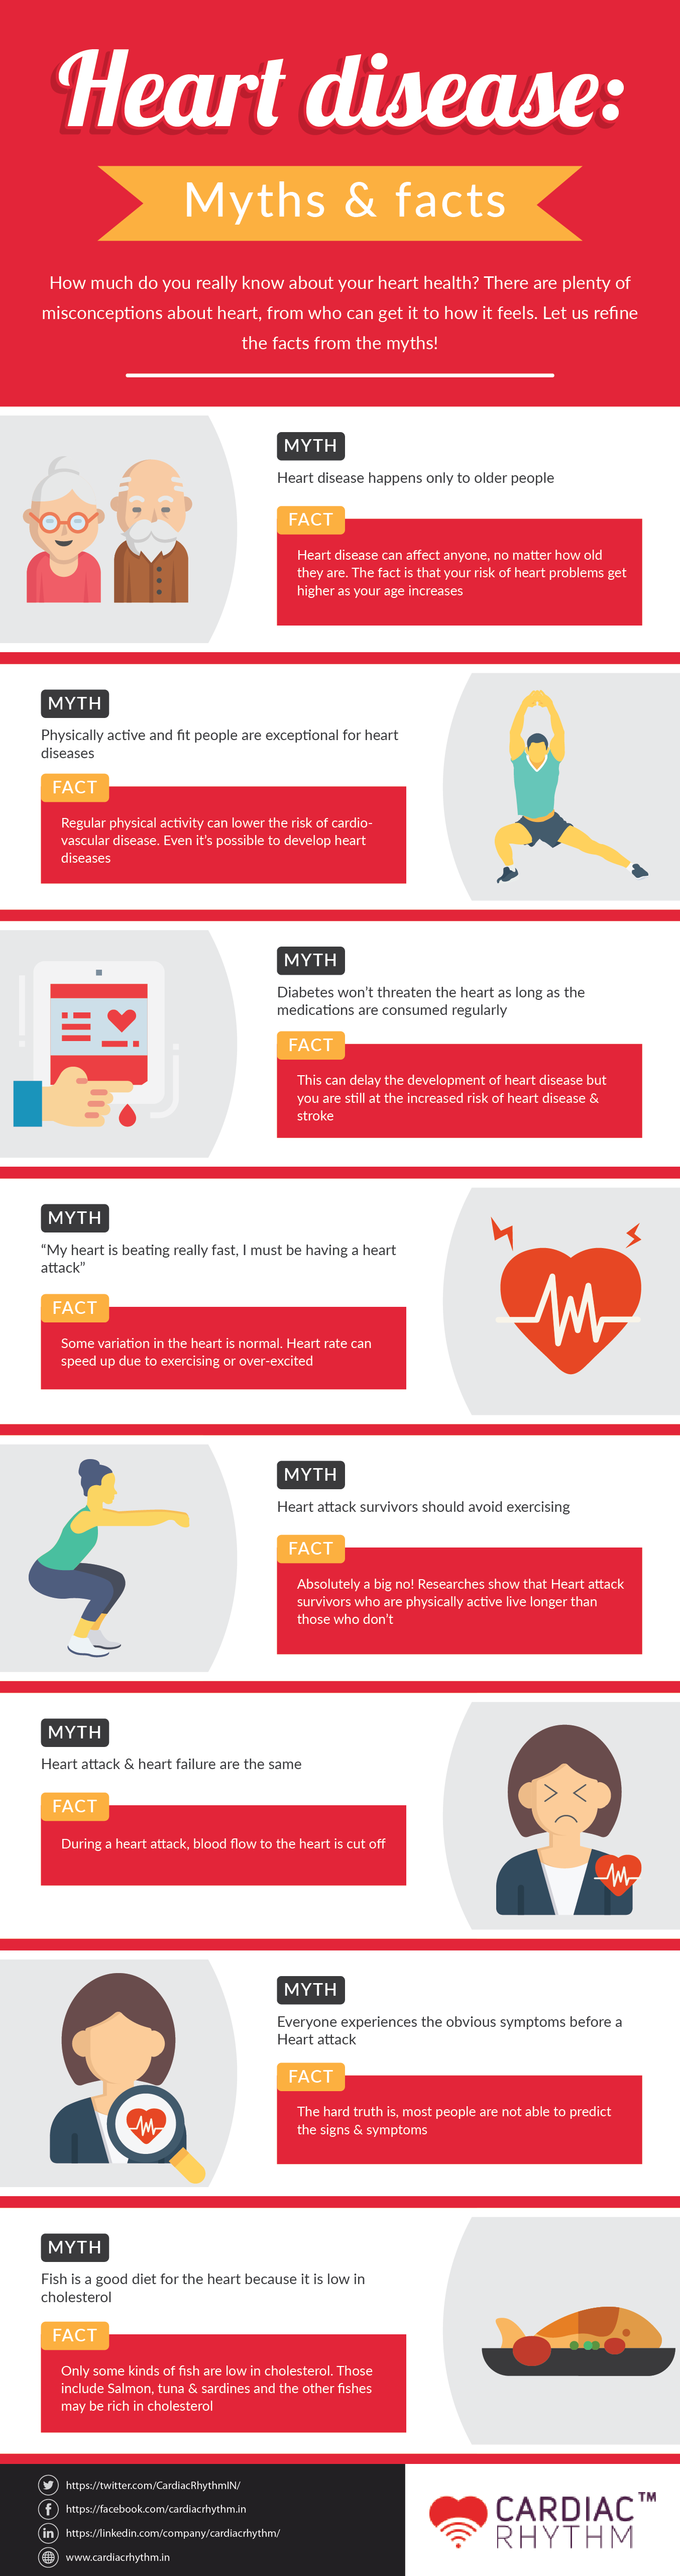 Myths & Facts of Heart Disease